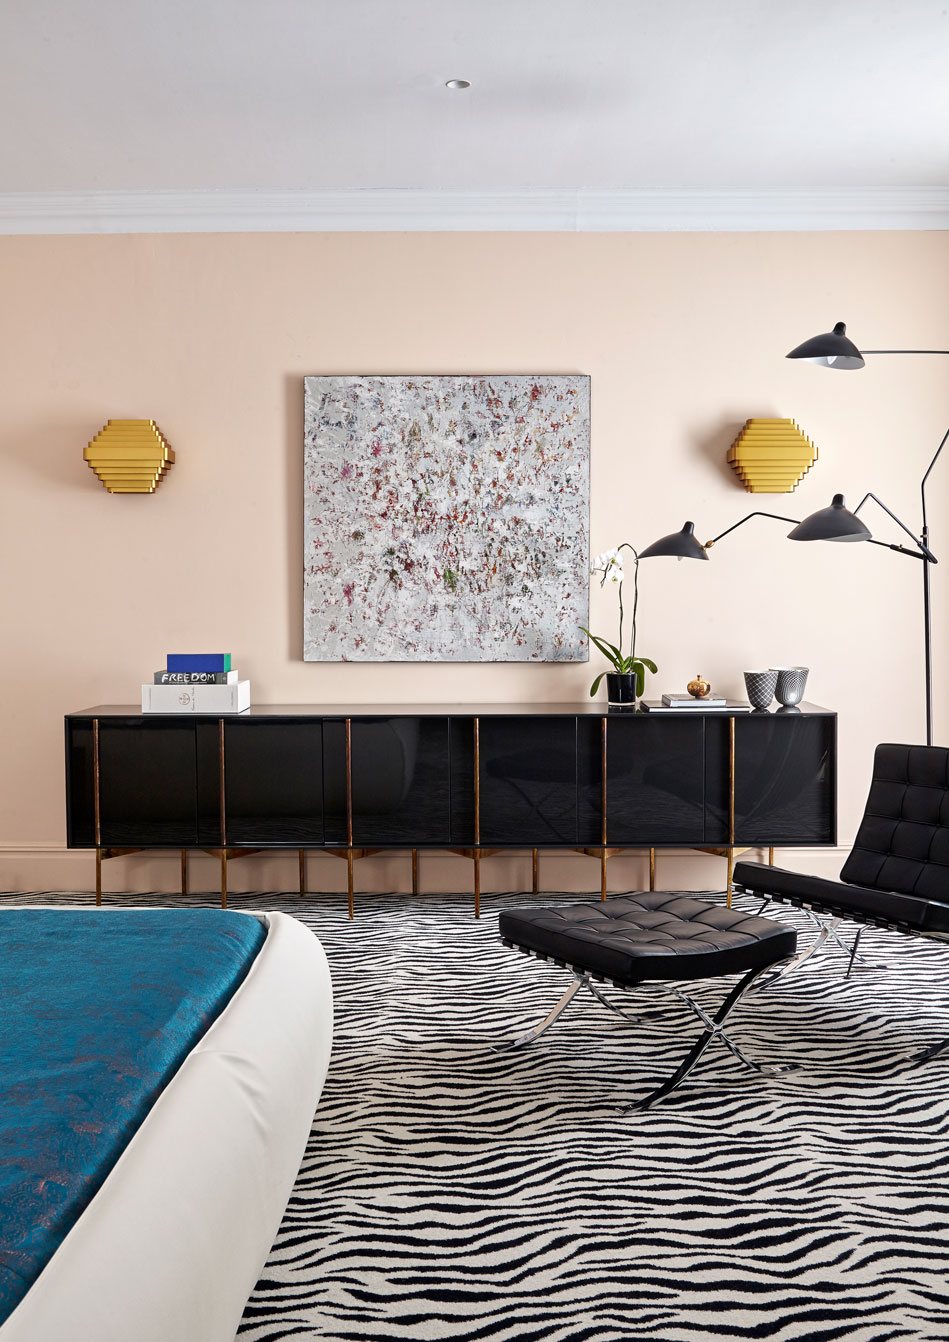 In the master bedroom, the custom made sideboard is by Tonic in Johannesburg and the standing lamp by Serge Mouille. Hand printed zebra carpets, custom made by Rowley & Hughes, are in all the bedrooms. 'Animal skin is one of my obsessions,' says Andrea.